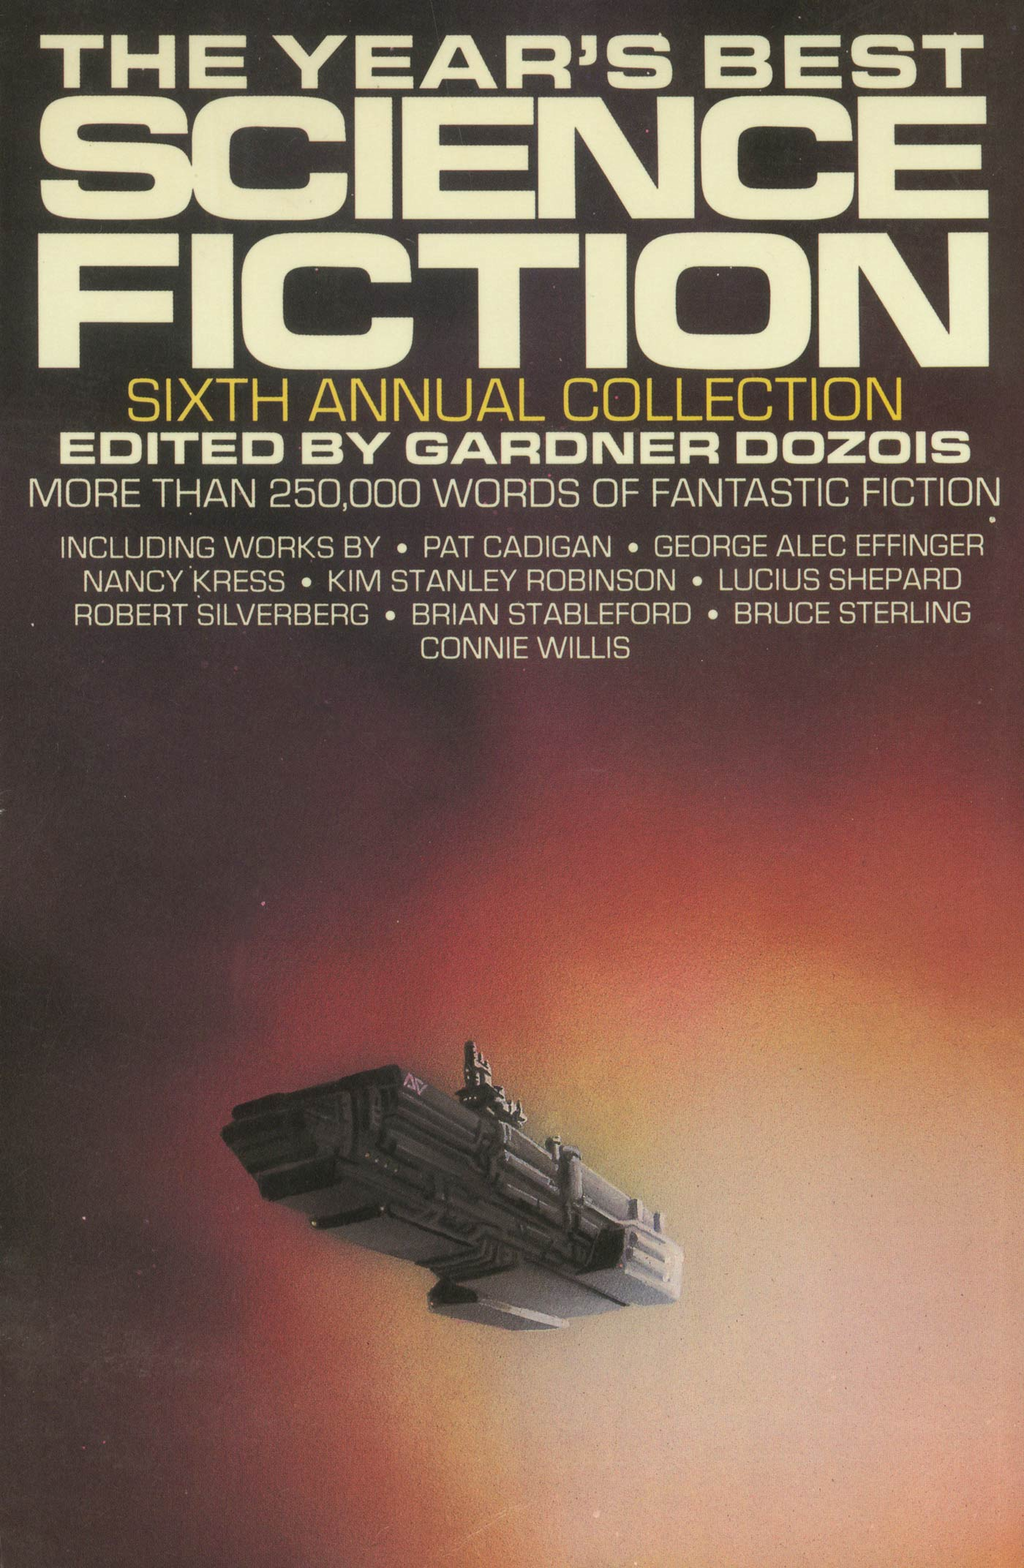 The Year's Best Science Fiction: Sixth Annual Collection By: